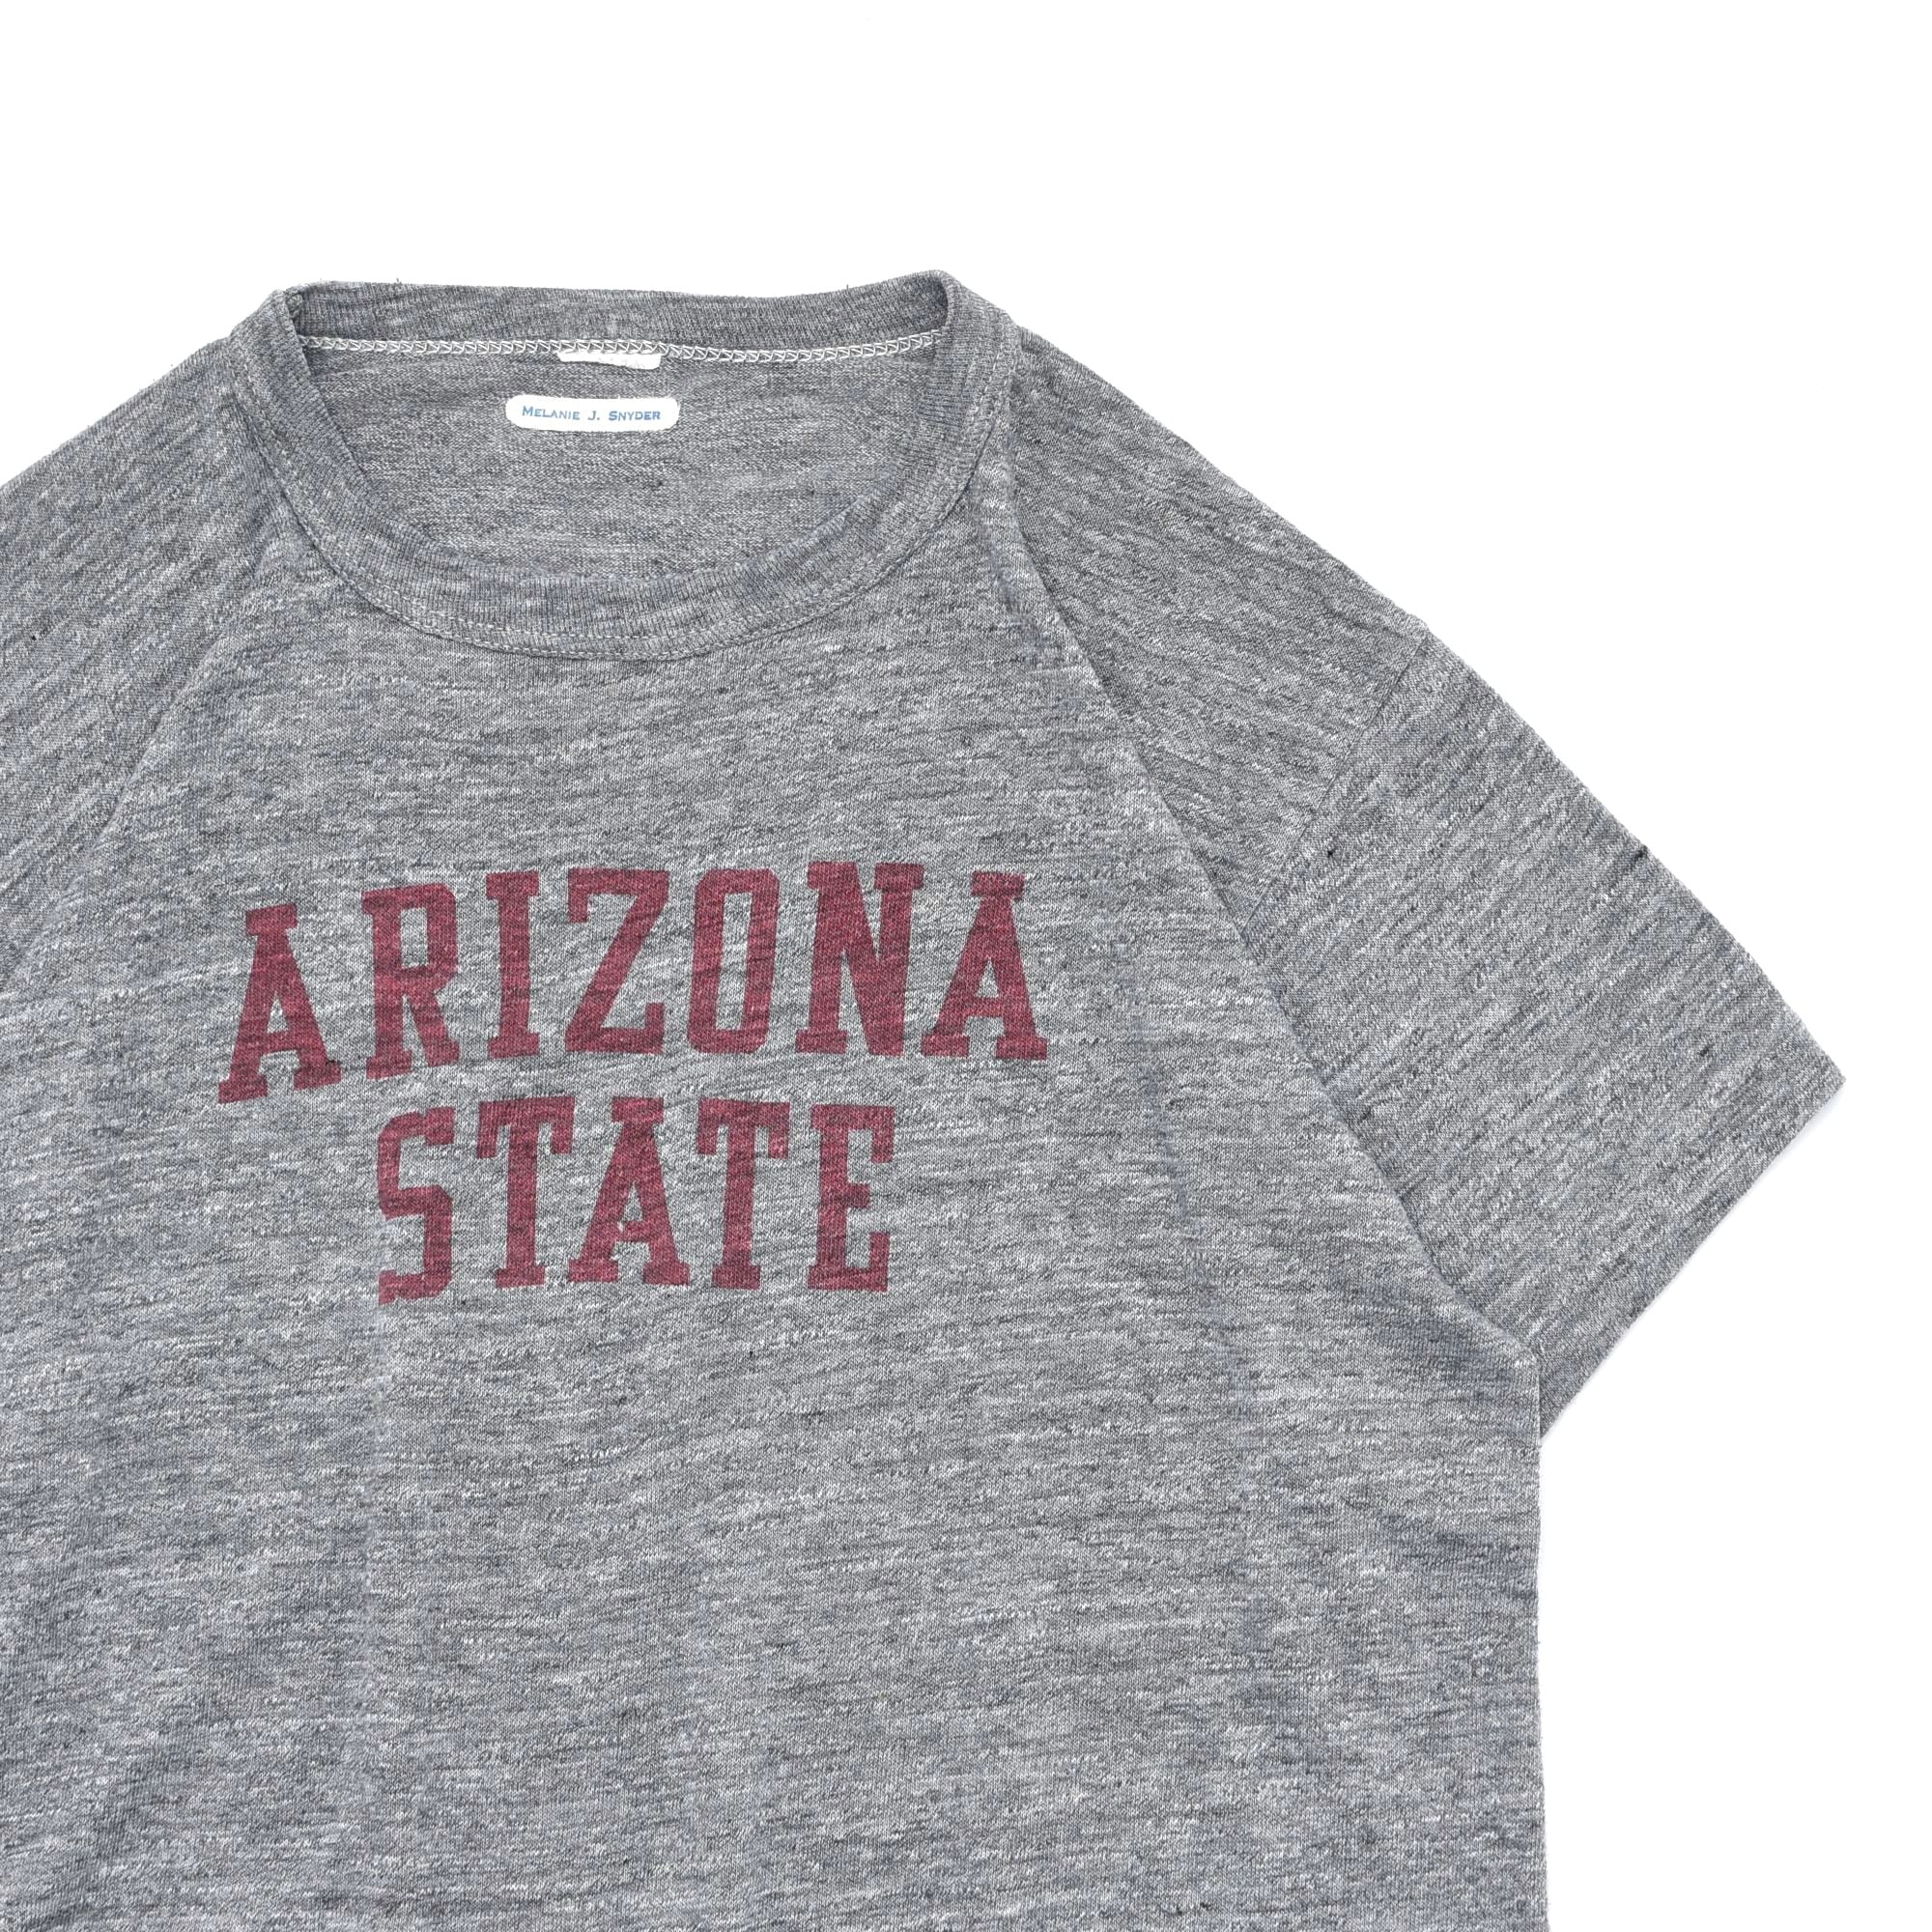 Vintage Soaked college print T shirt